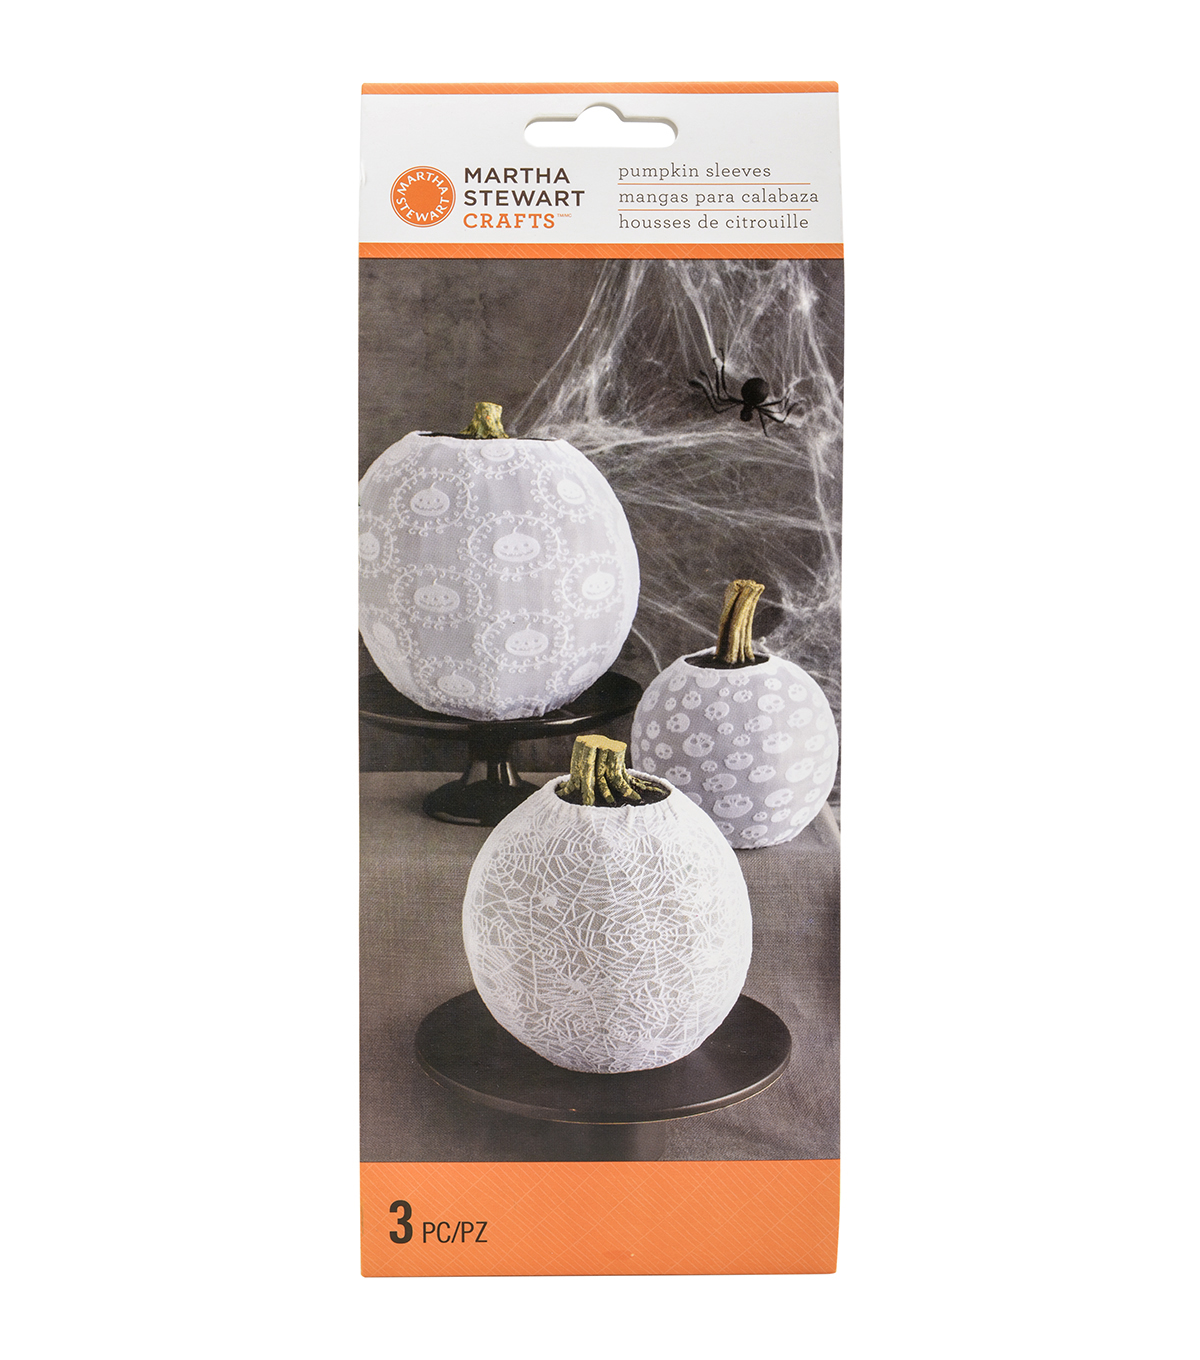 Martha Stewart CraftsWhite Pumpkin Sleeves 3/Pkg-Spooky Night